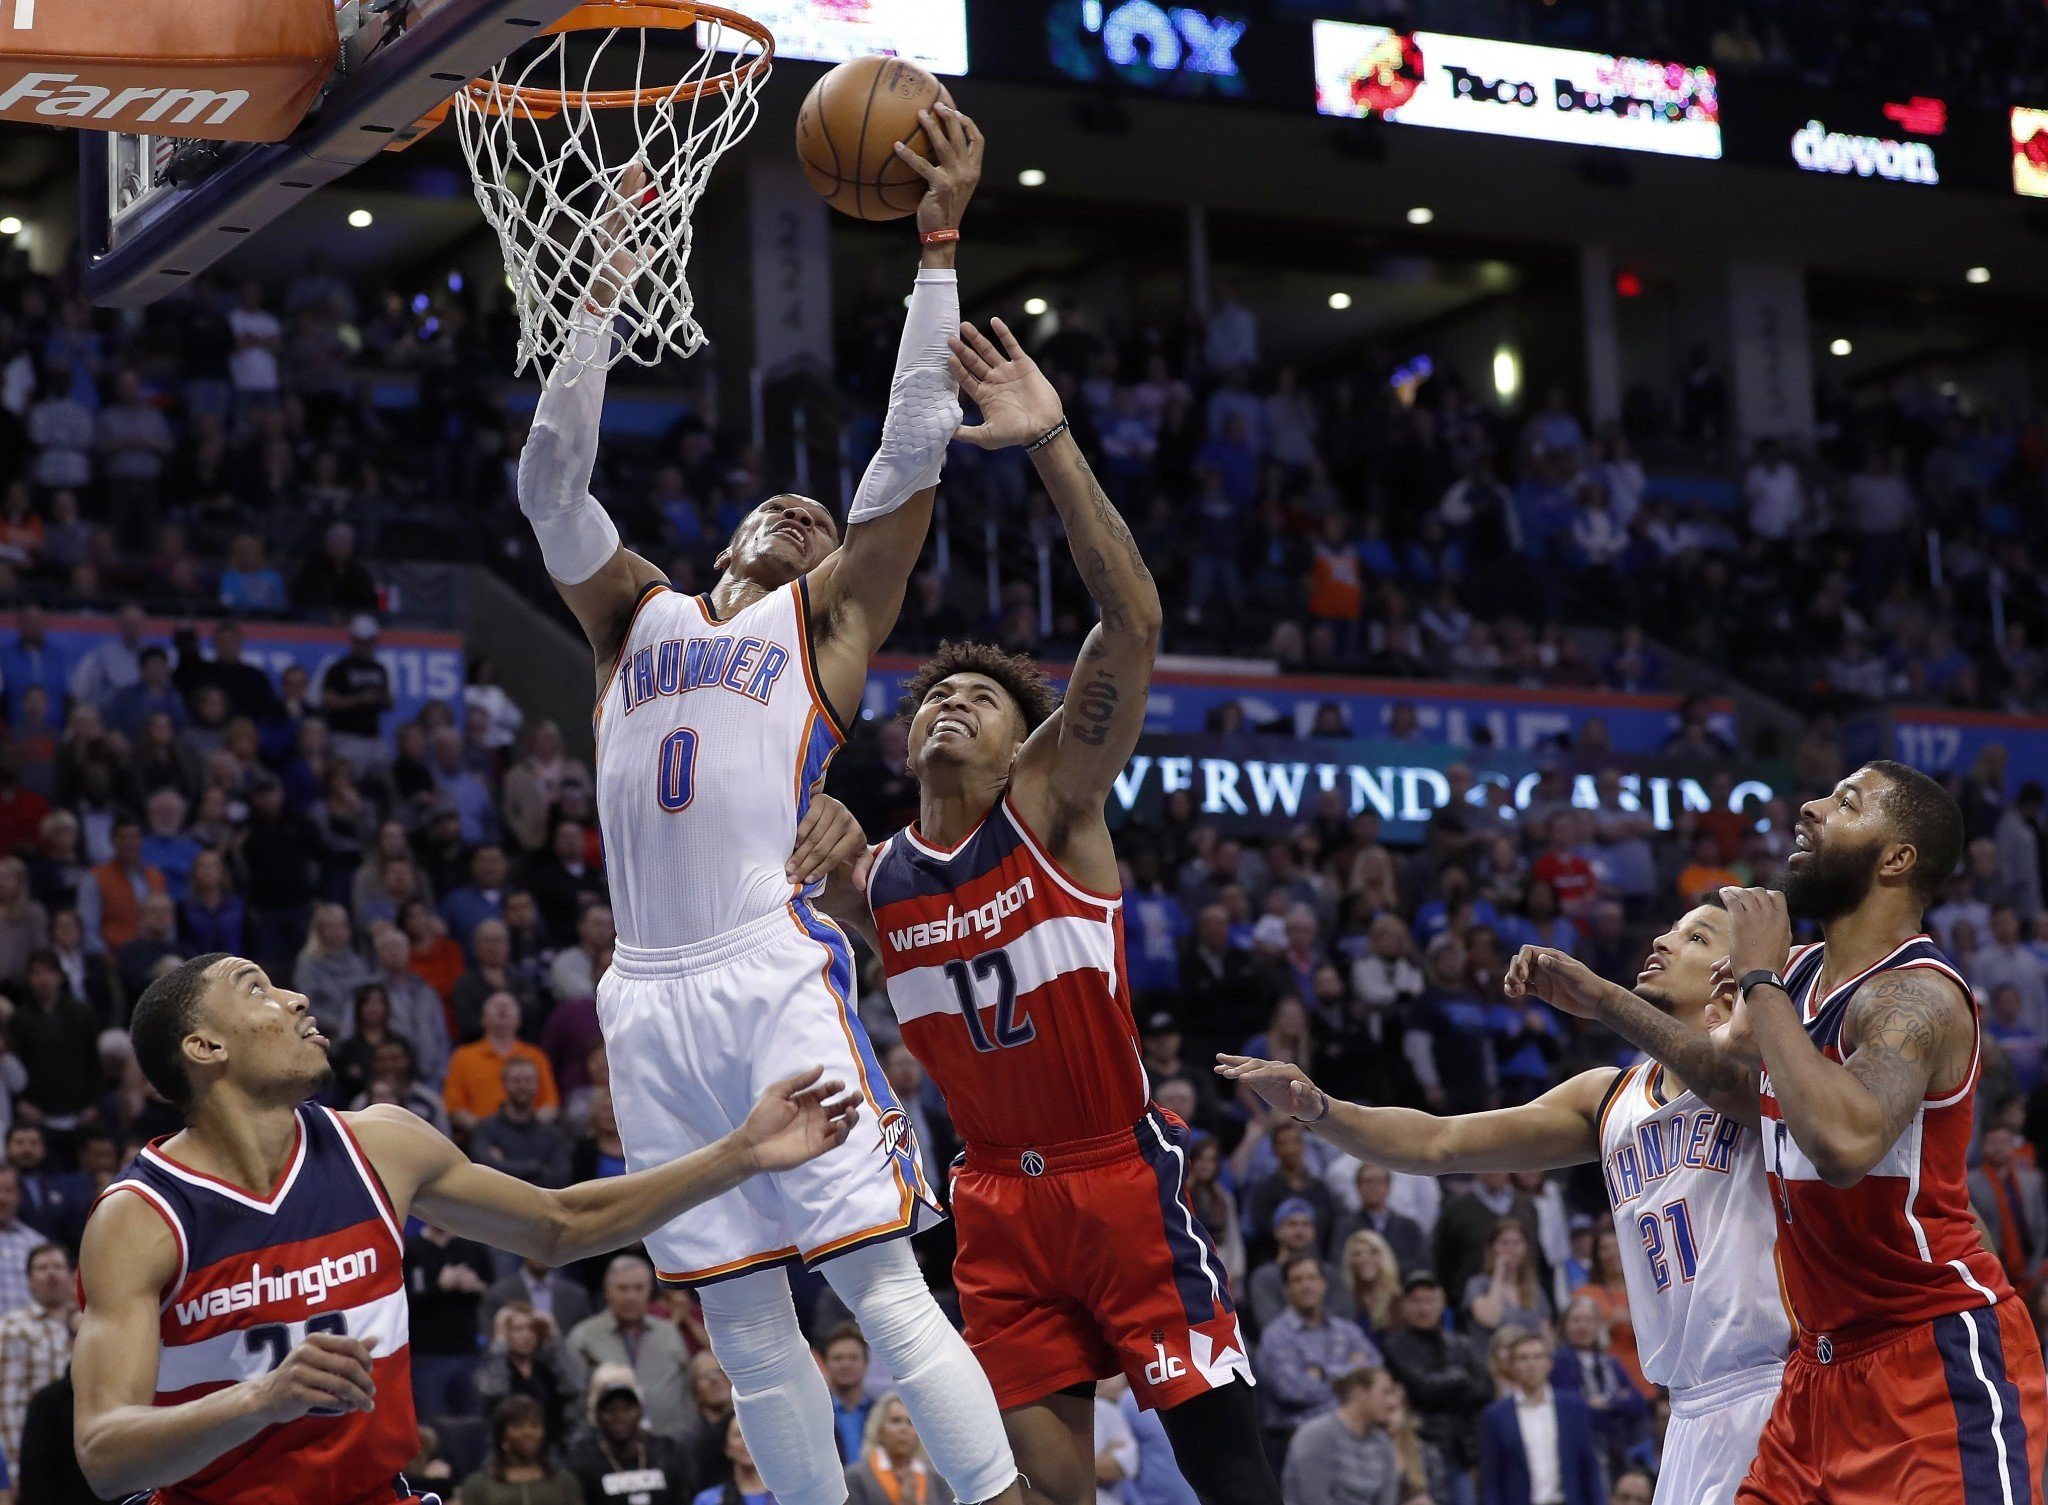 Russell Westbrook skies over the Wizards for one of his 14 rebounds. (AP)